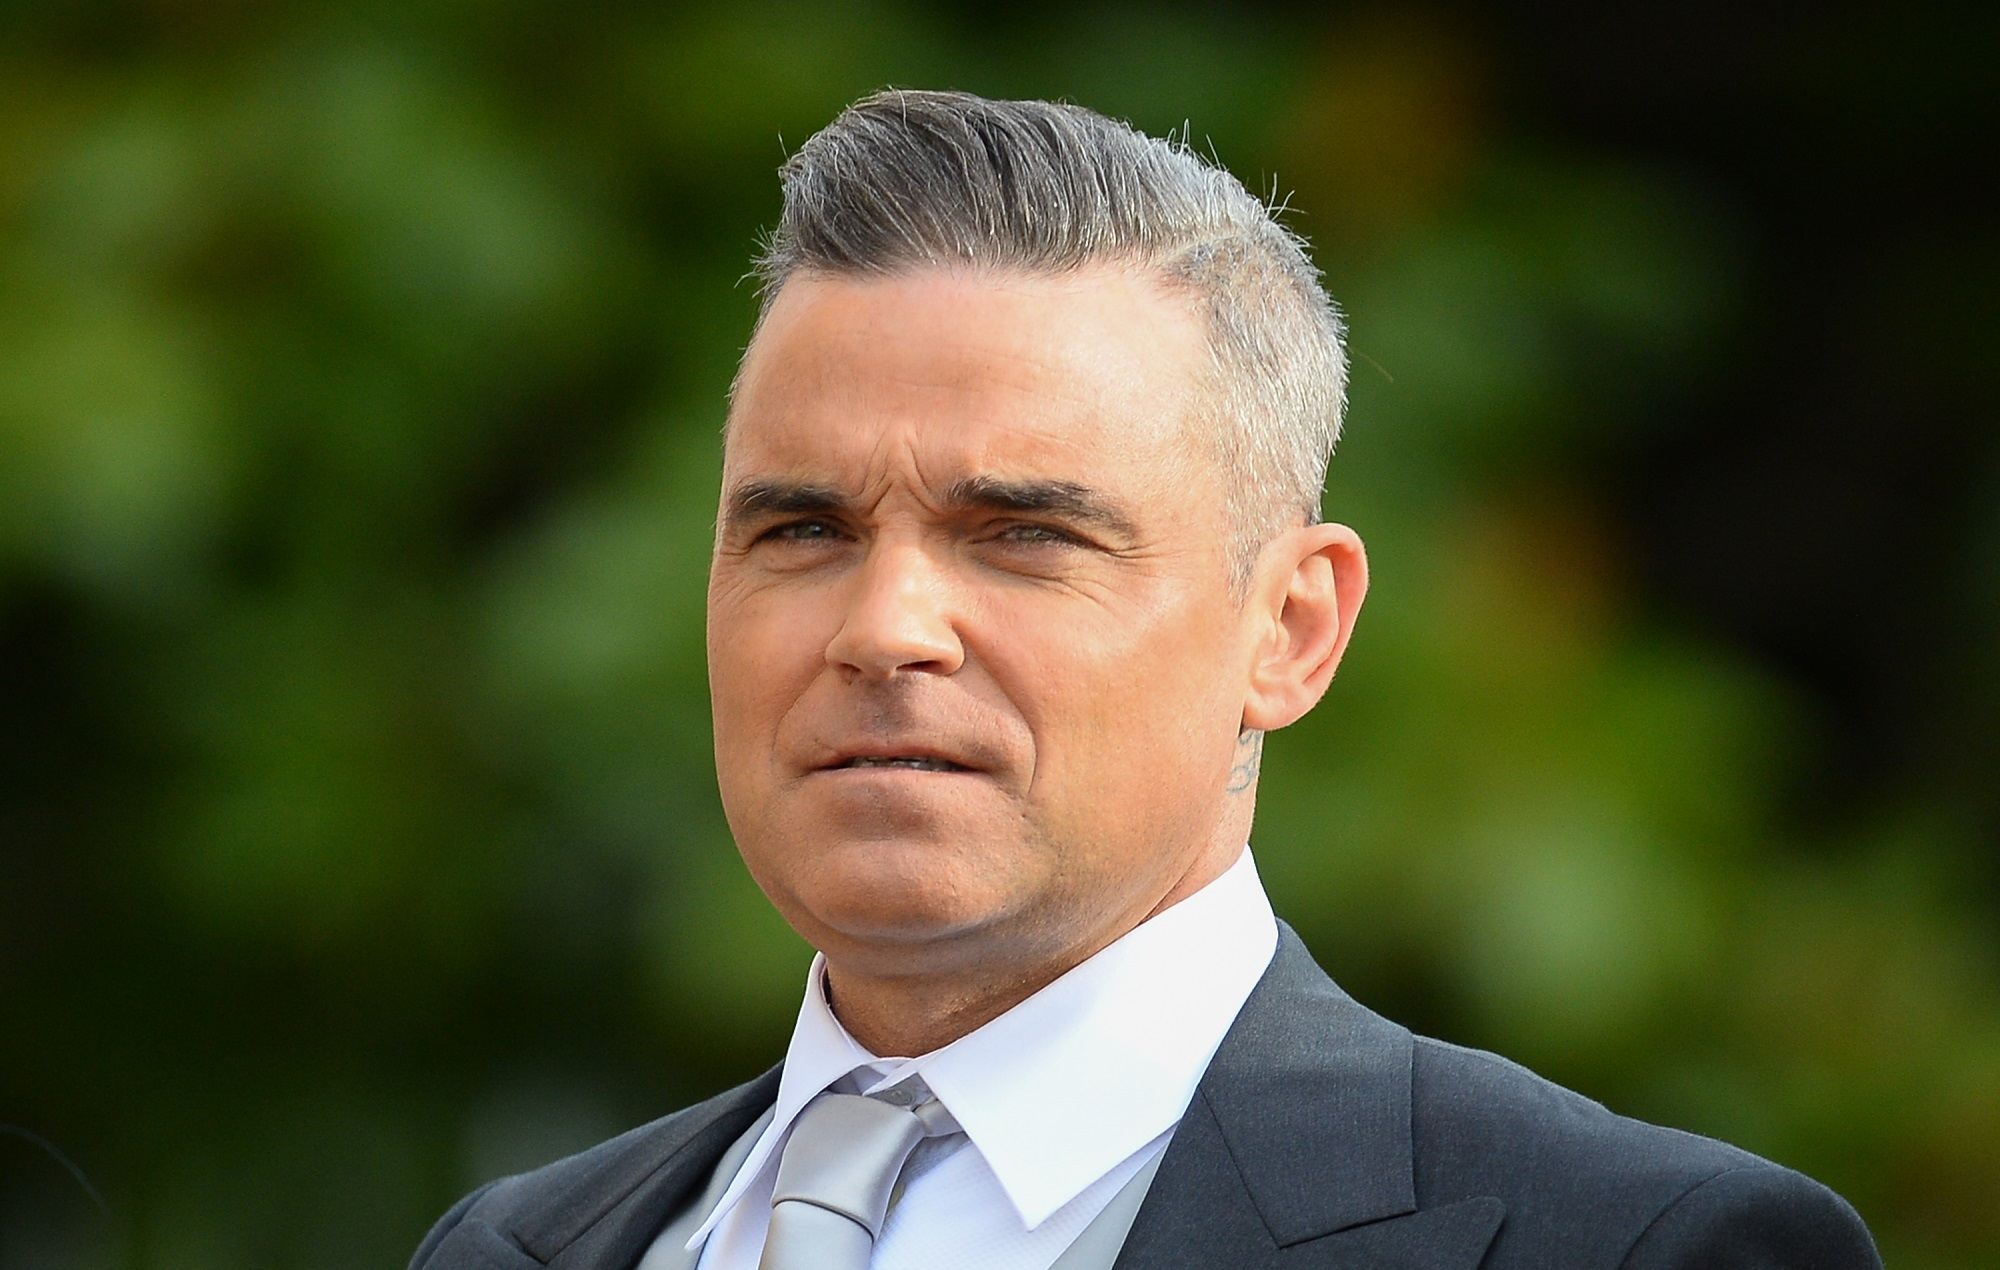 Robbie Williams Vermögen